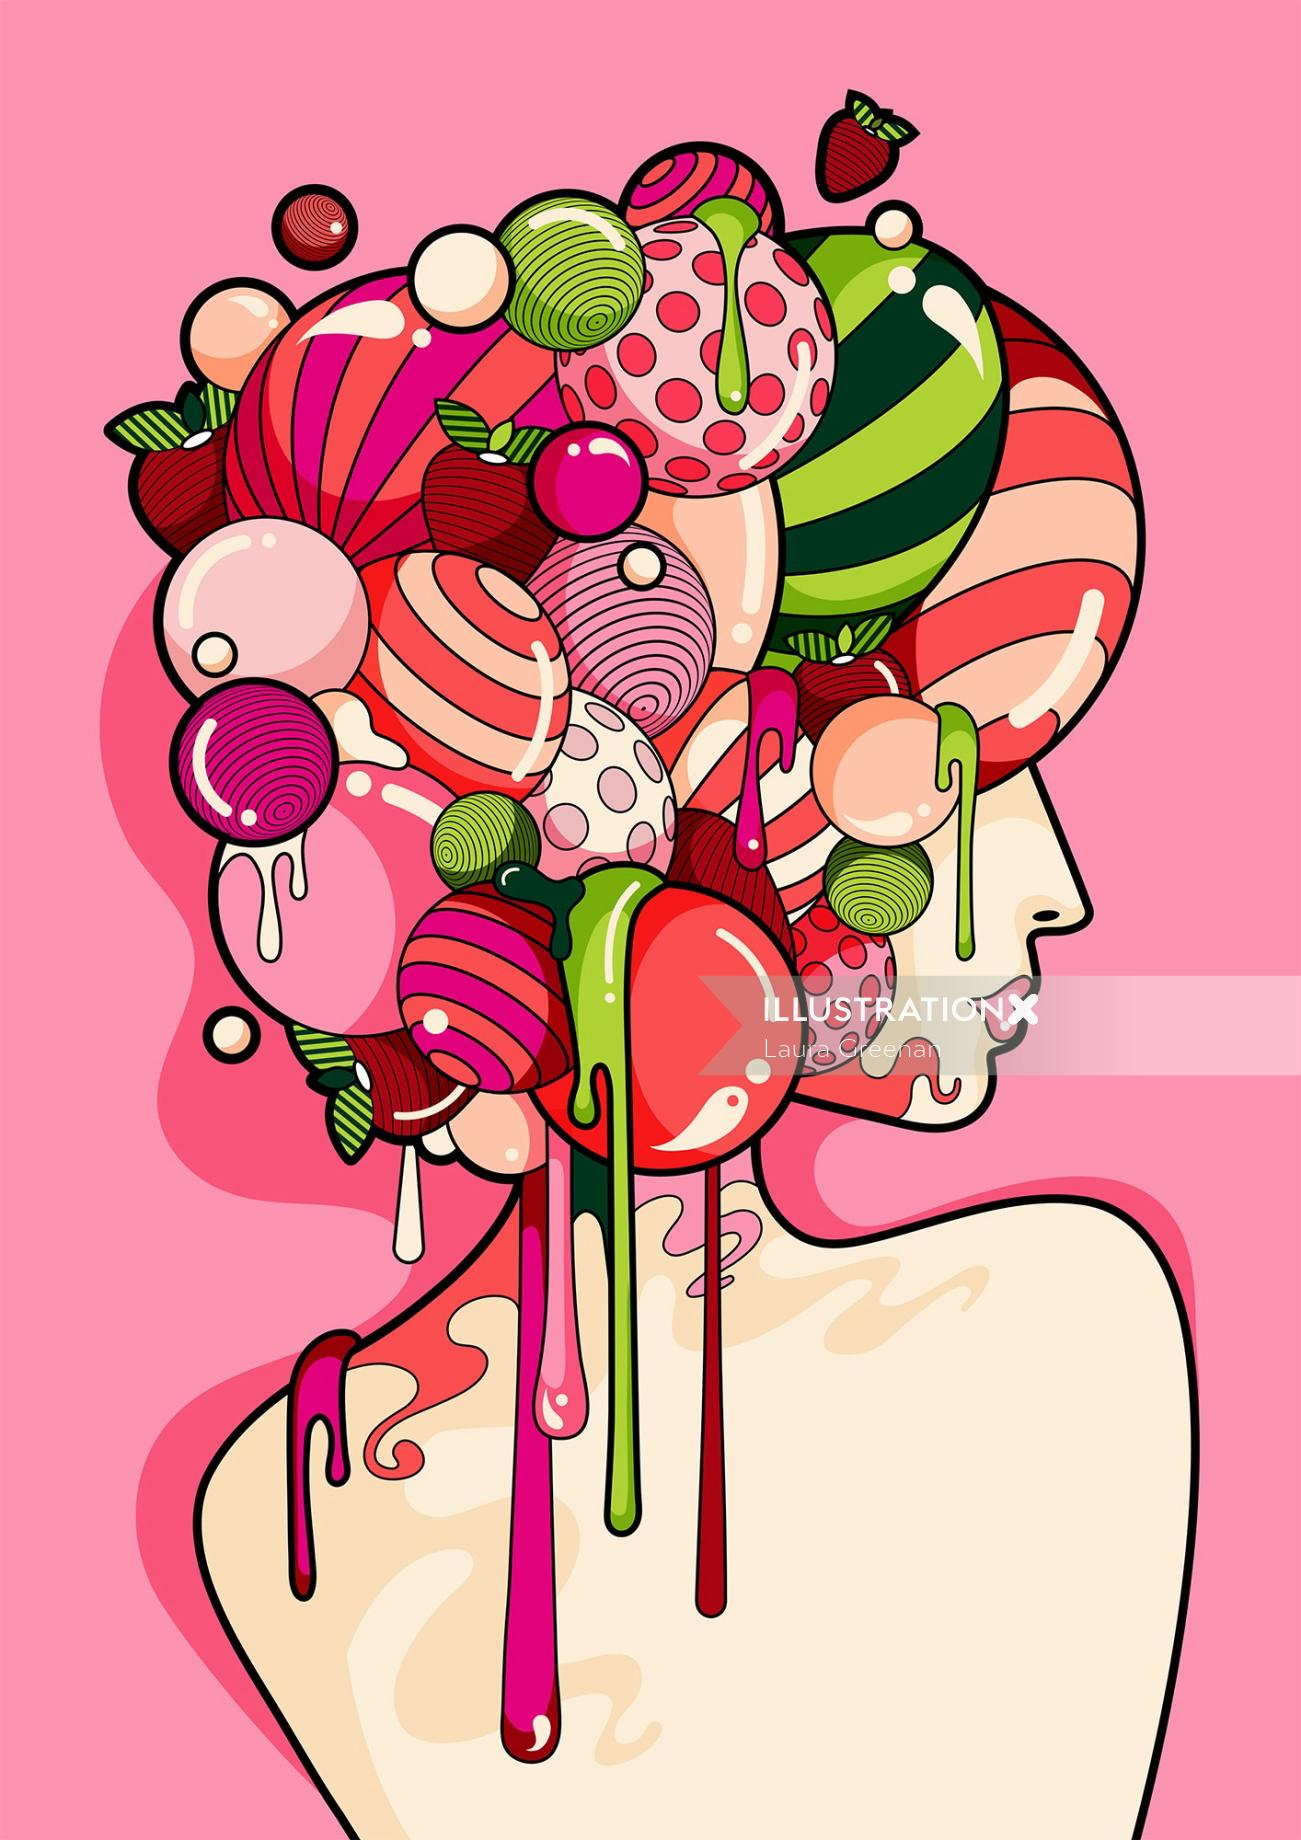 A surreal pop art style female portrait with colourful and shiny hair.